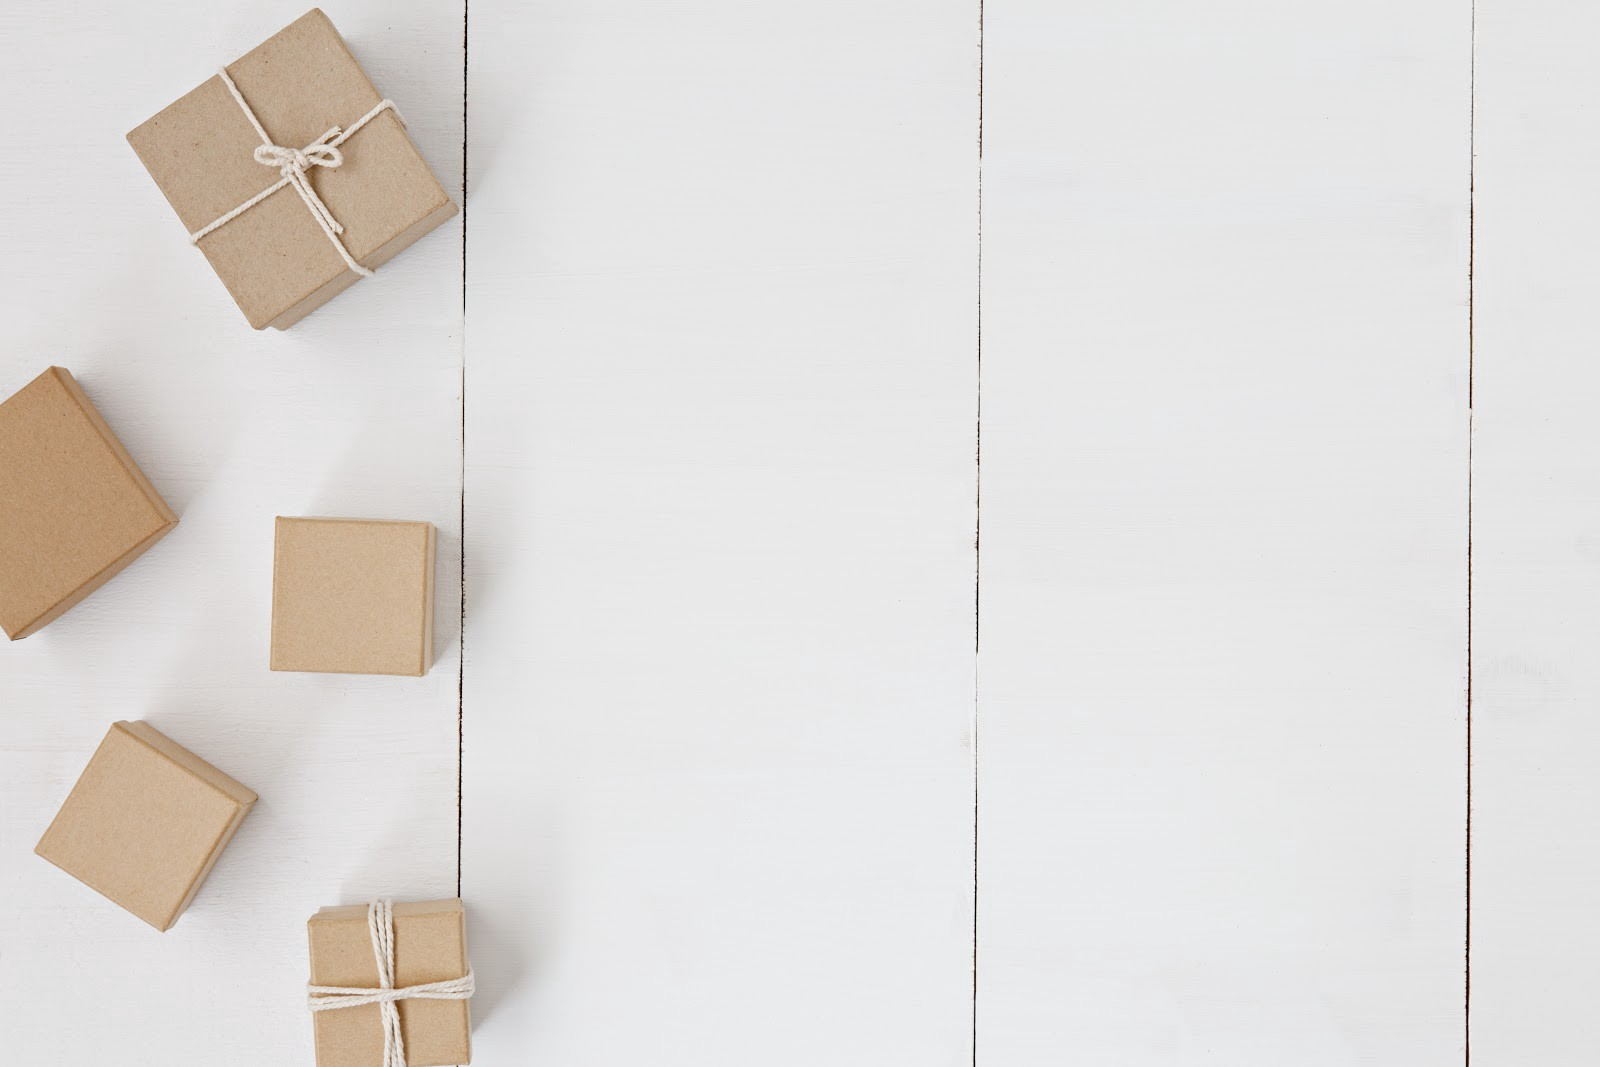 Delivery boxes lined up on a neutral background